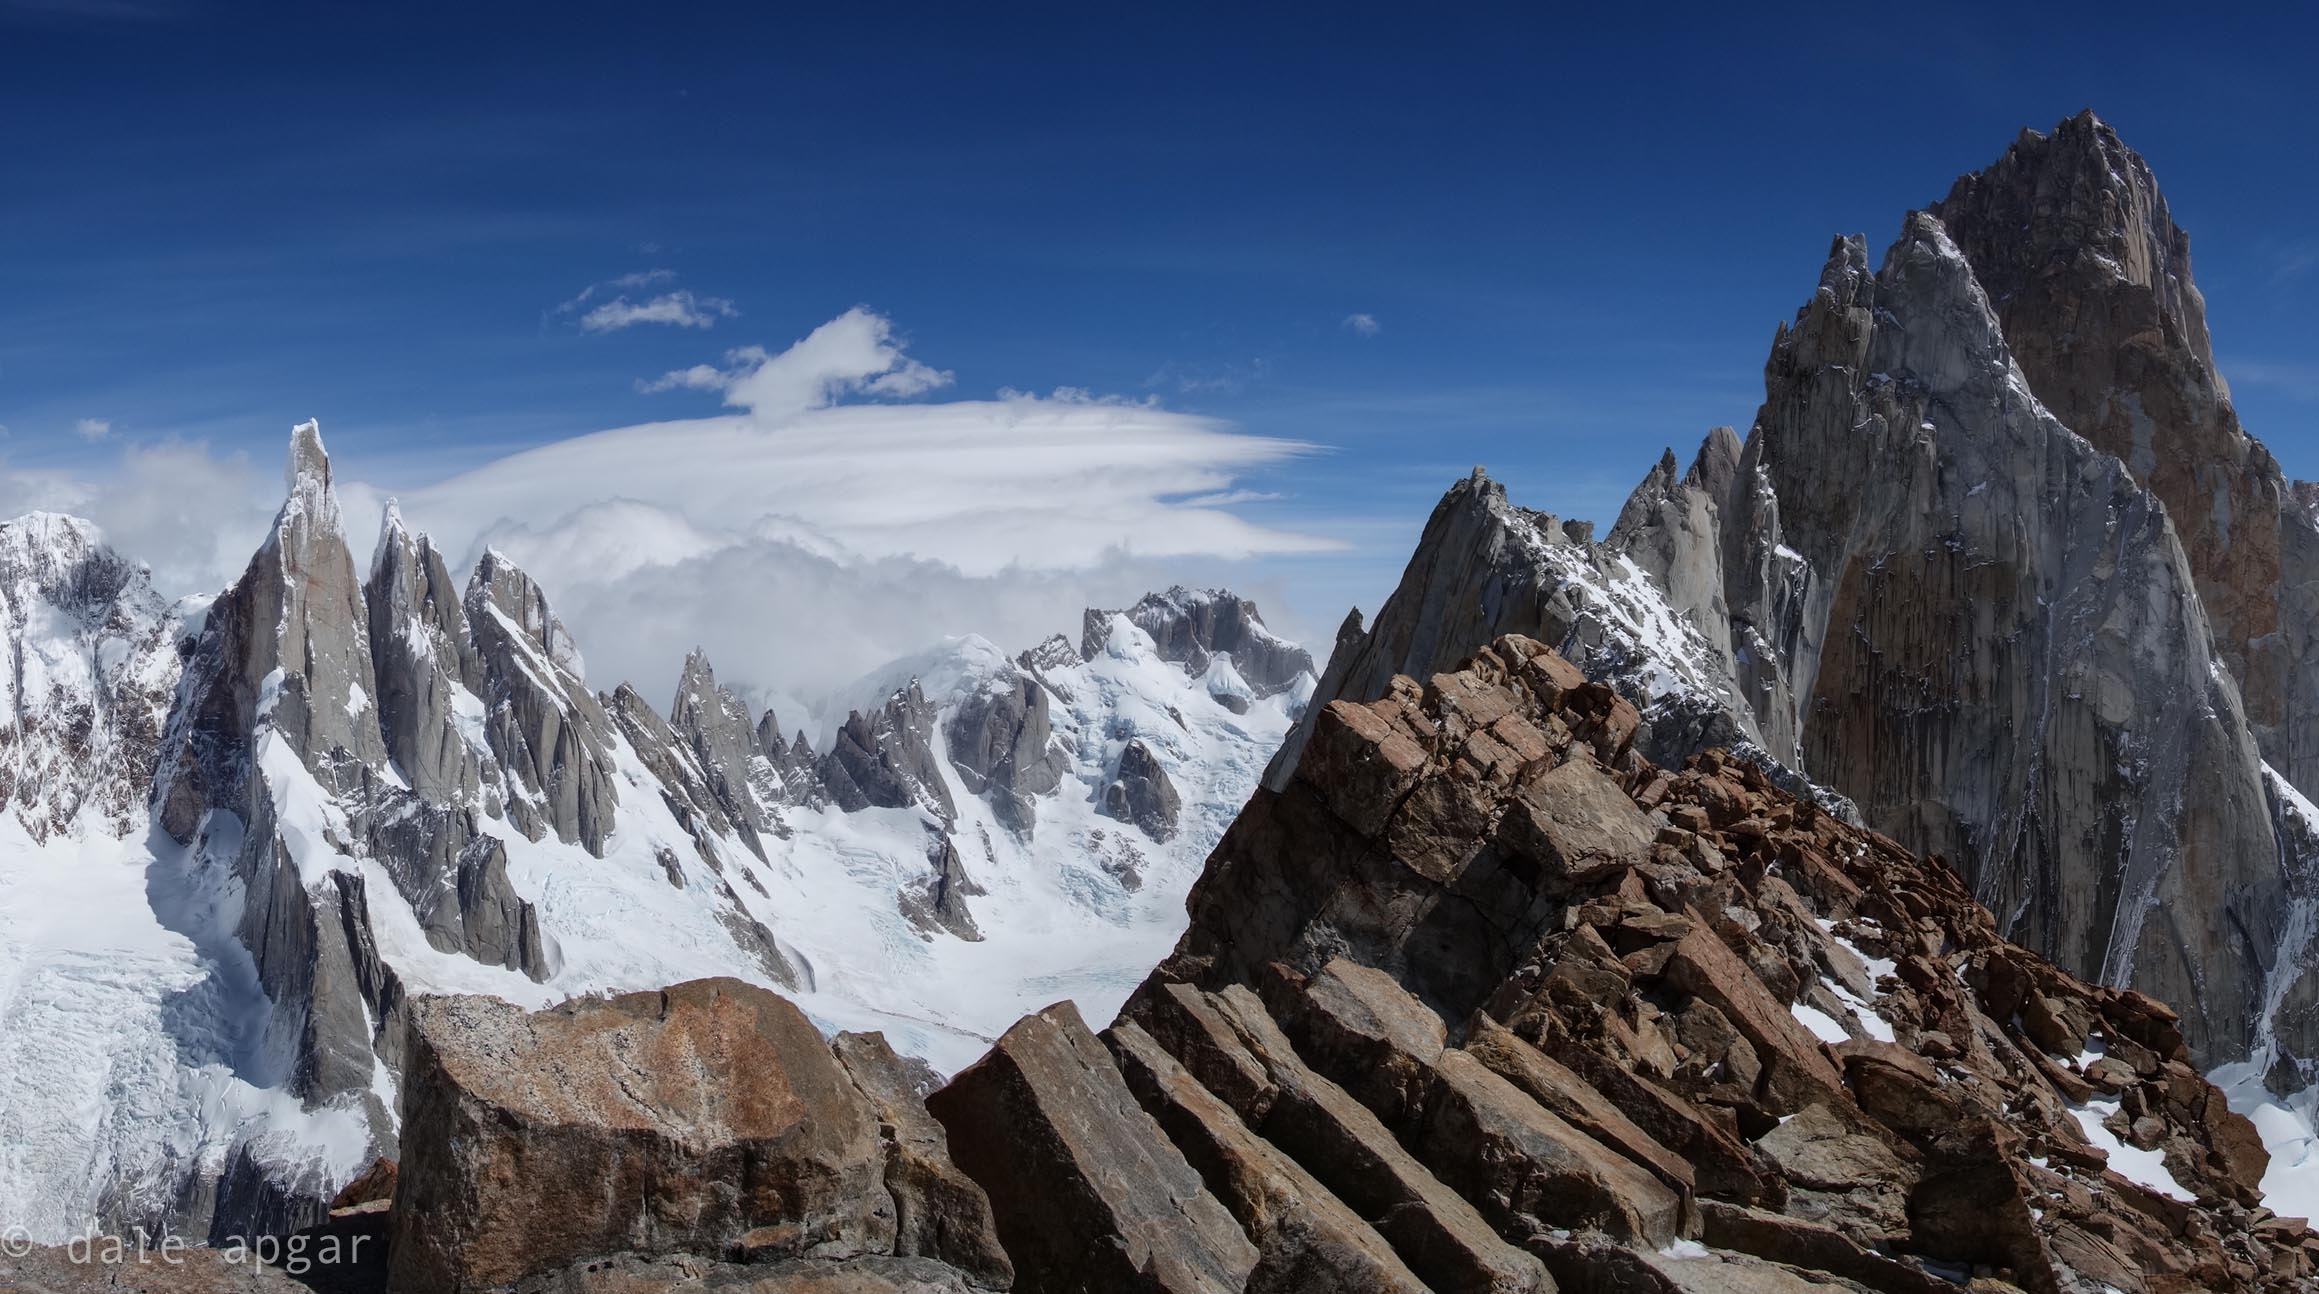 The view of the Torre and Fitz Roy Massifs from Mojon Rojo